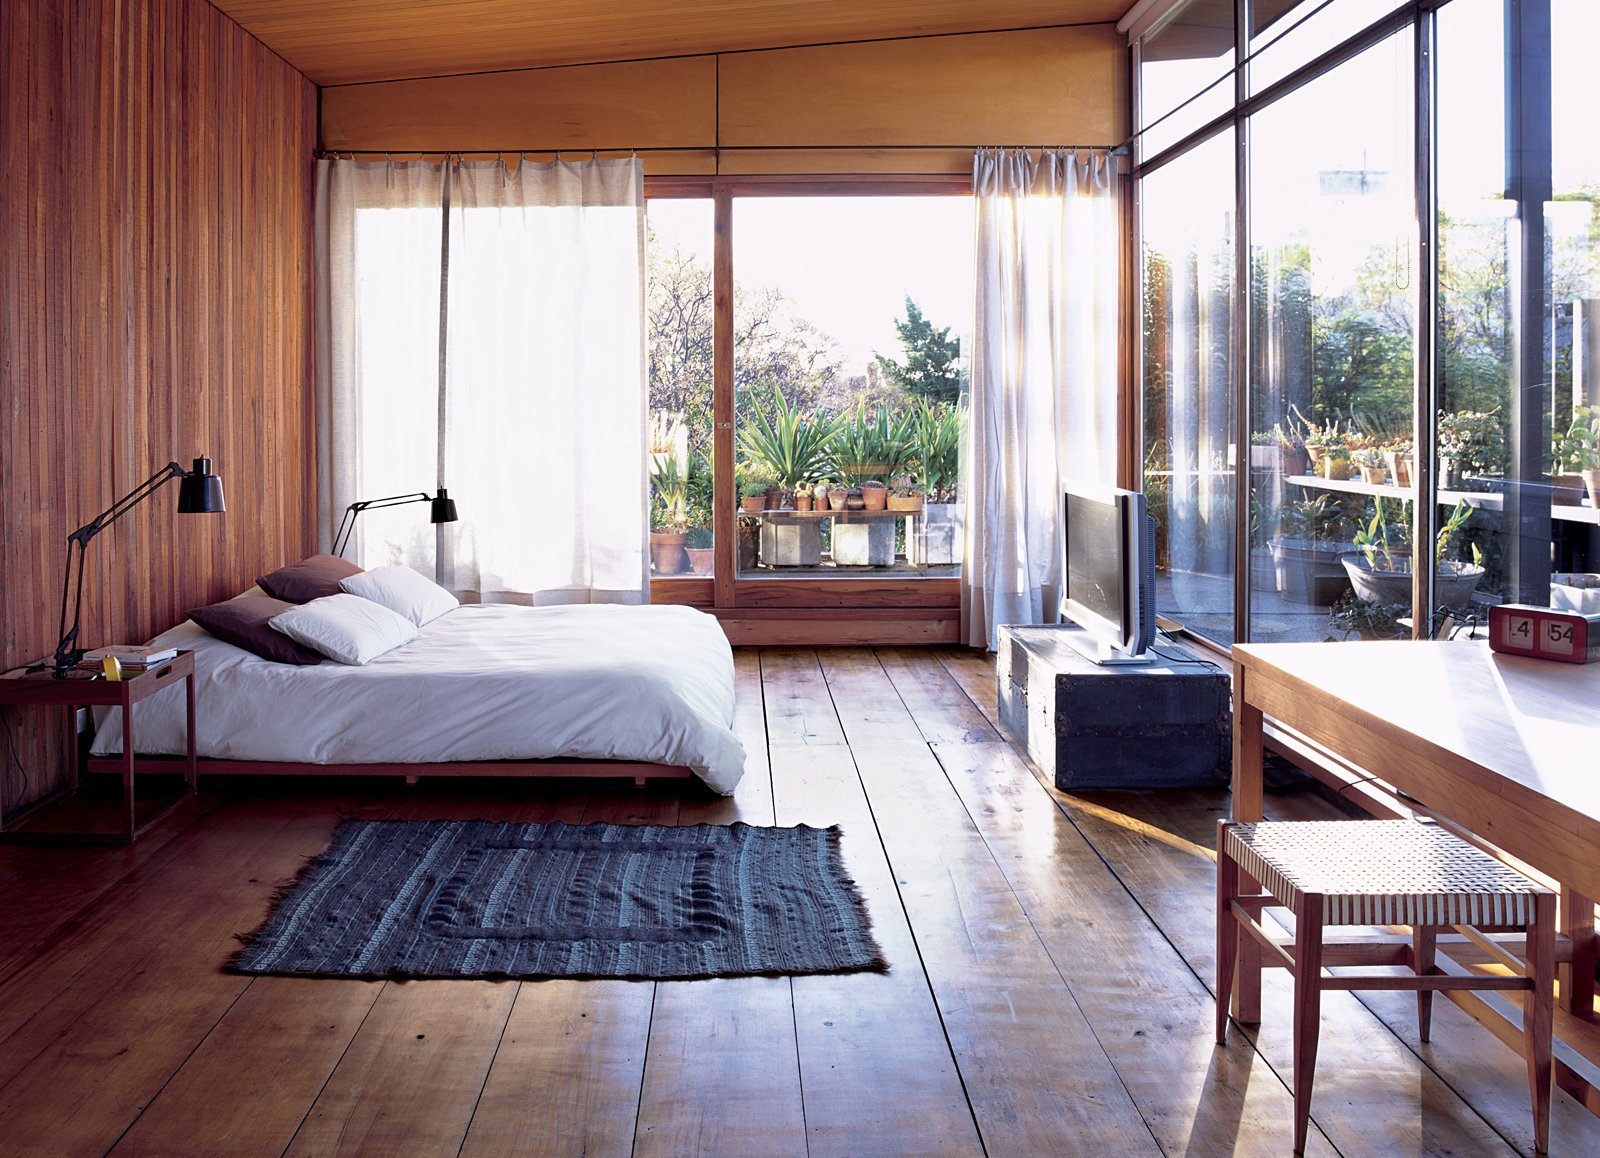 Articles about 7 comfy cozy bedrooms on Dwell.com